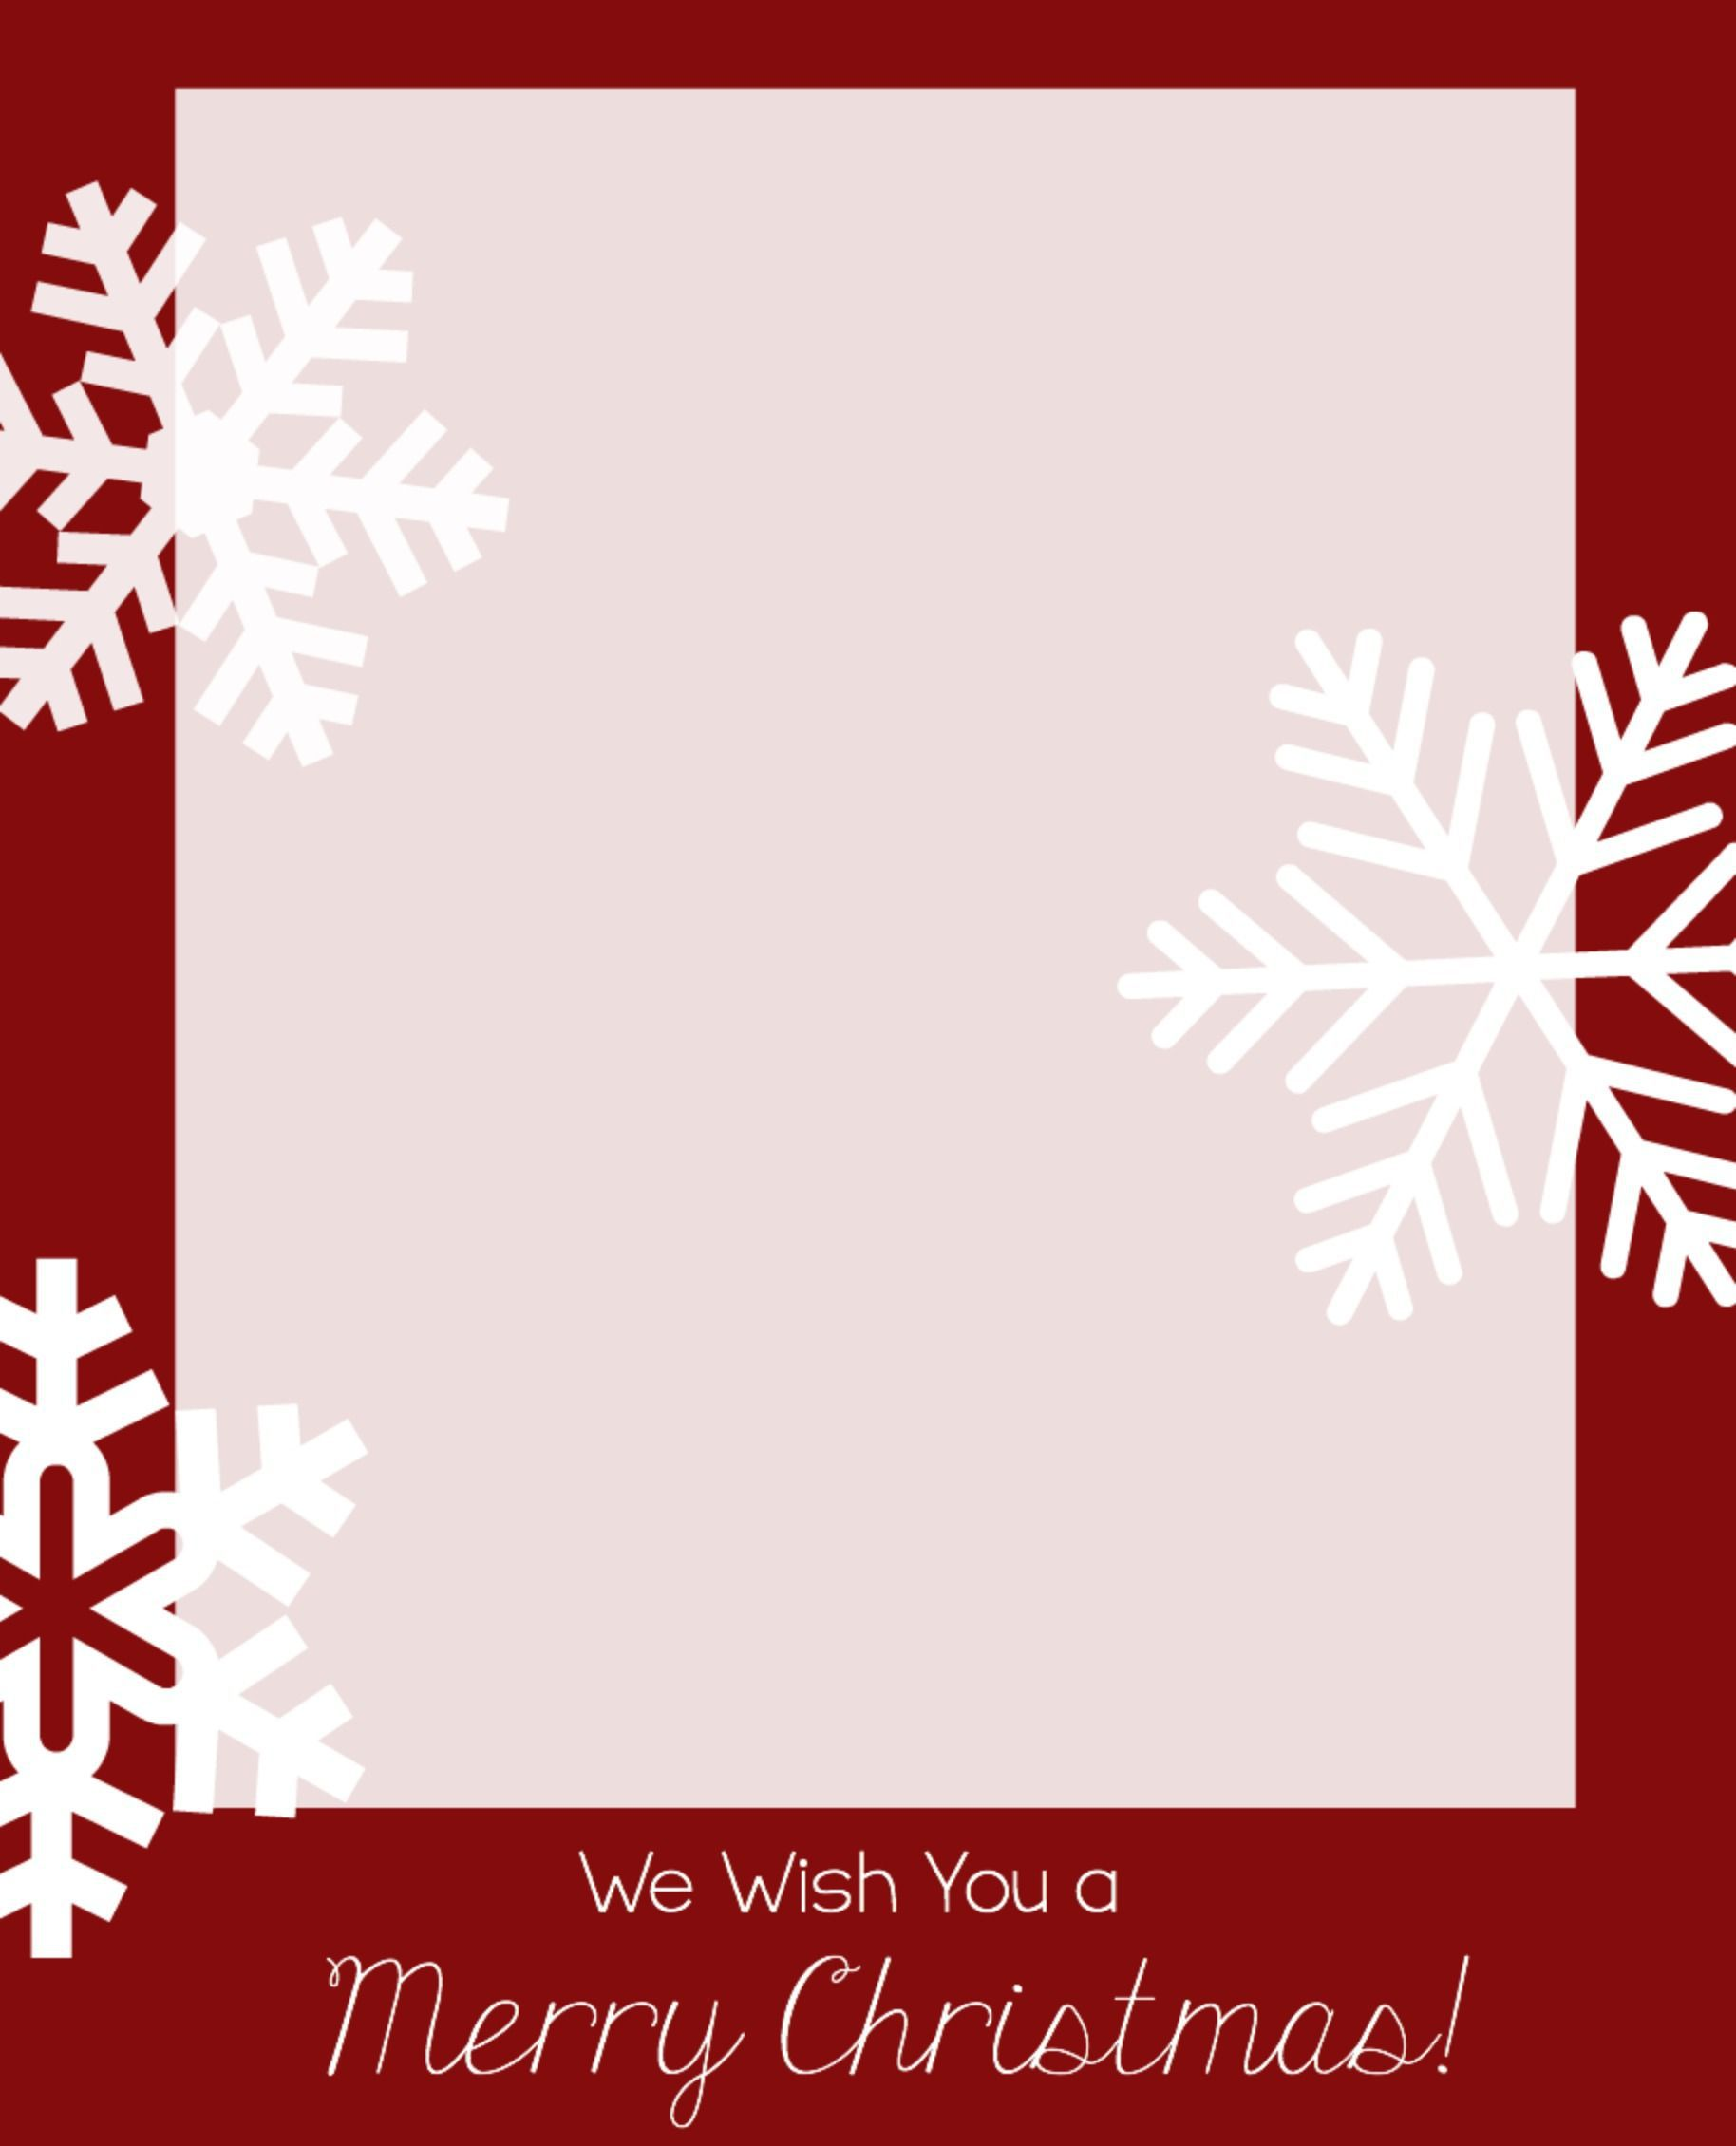 005 Simple Christma Card Template Free Download Photo  Downloads Photoshop EditableFull